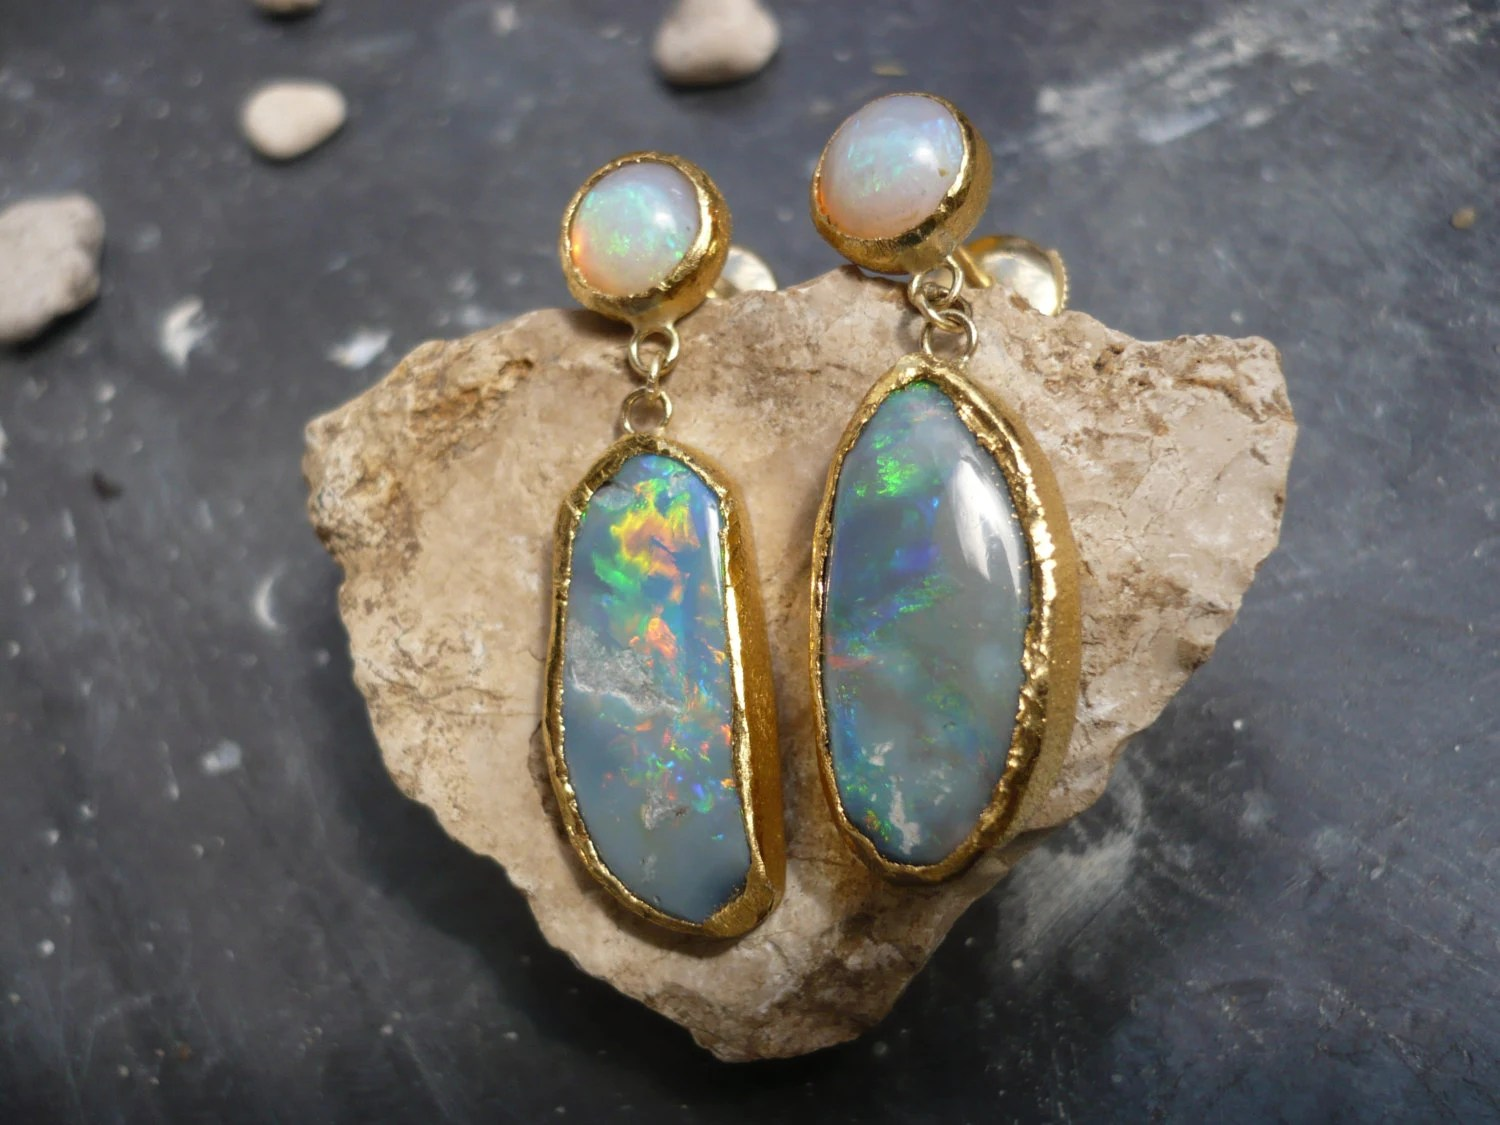 18 ct yellow and fine gold earrings with 4 australian opals - Bimonia